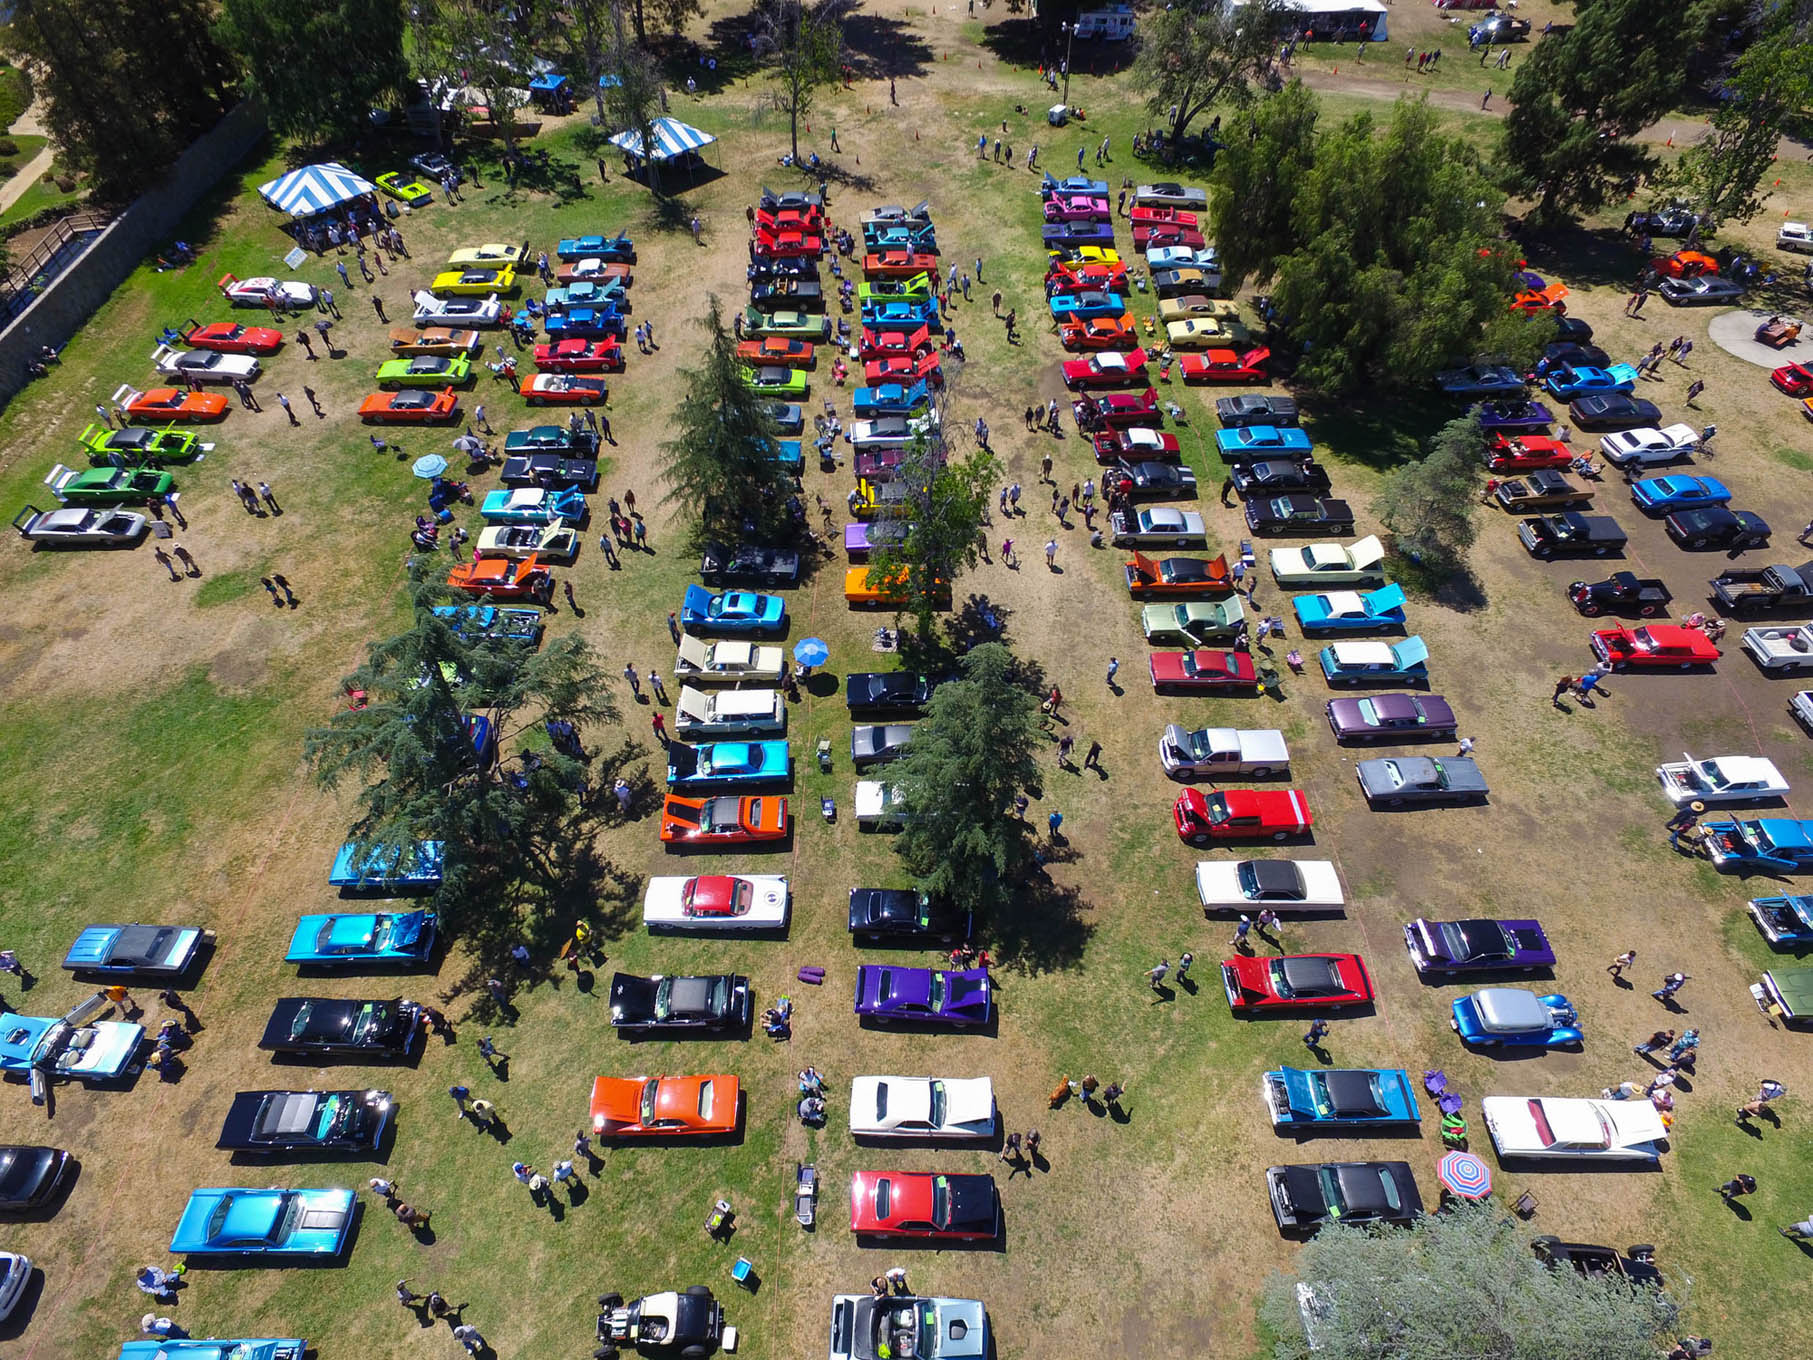 proxy in Spring Fling 2017 Van Nuys, CA in Car Shows, Events, and Races (ROSEVILLE MOPARTS)